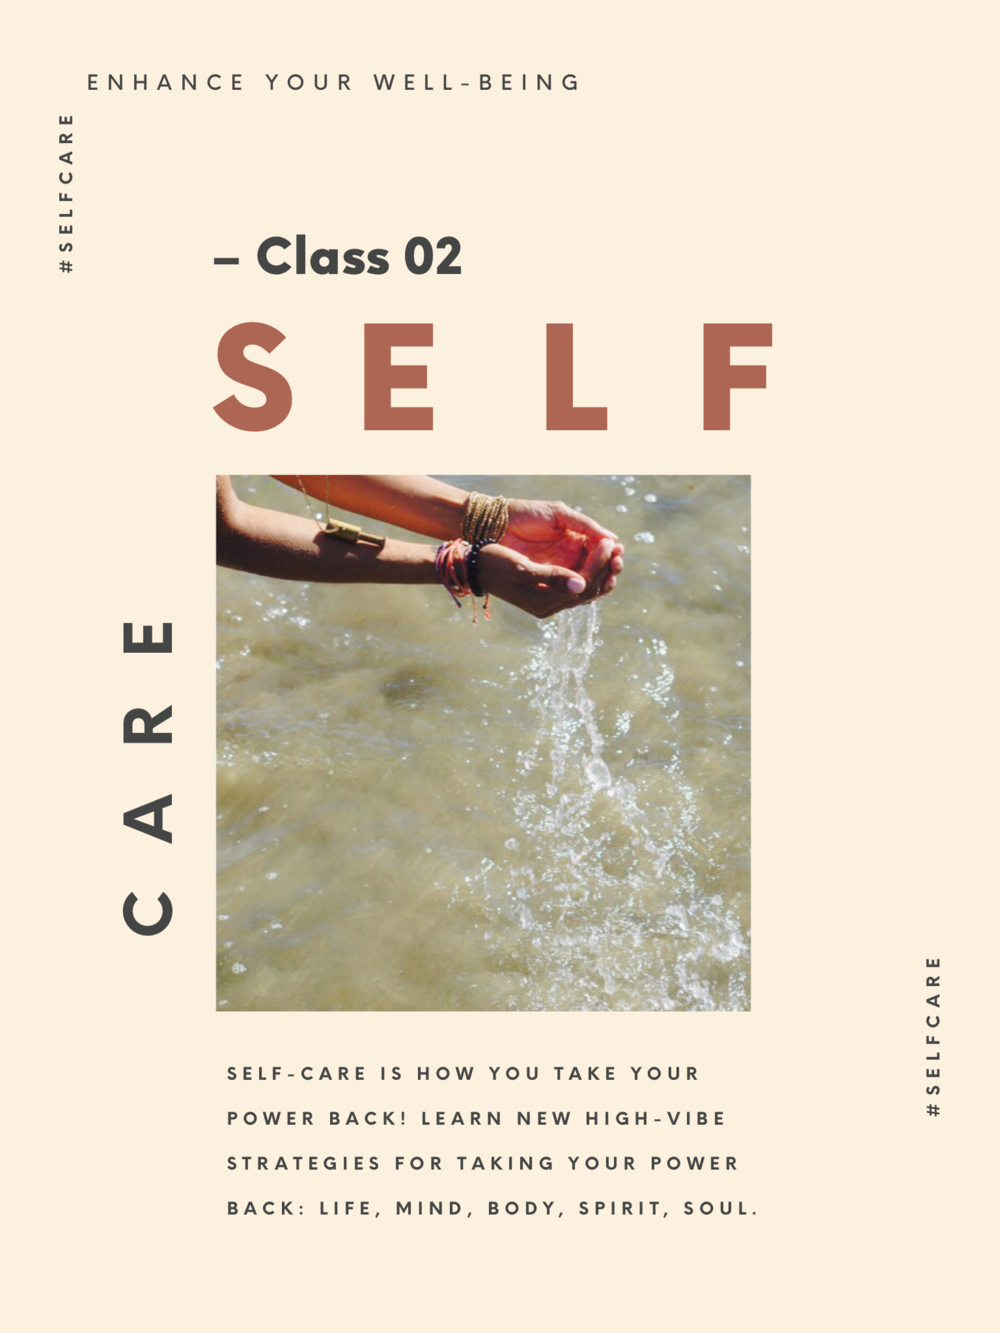 Self-Care Class - I share personal and practical tools to transform the way you journey, work, heal, and do life.Learn the essentials and more.Discover strategies to restore, nurture, soothe, and enhance your well-being: mind, body, spirit, and amp up personal power, through this Self-Care class.Expand into higher levels of vibrations, personal power, purpose, inner-beauty, potential, peace, creativity, magnetism + more.